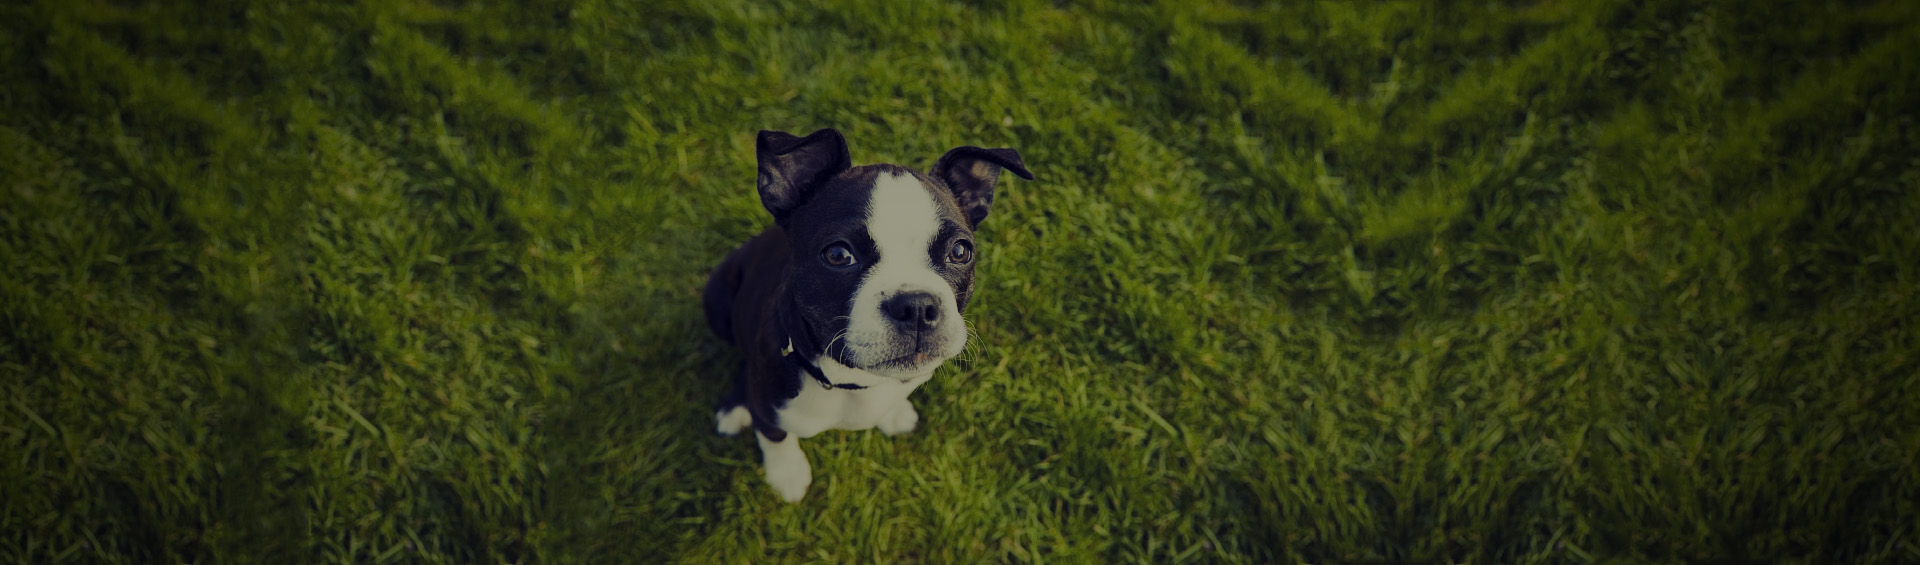 dog-on-lawn-as-Smart-Object-1